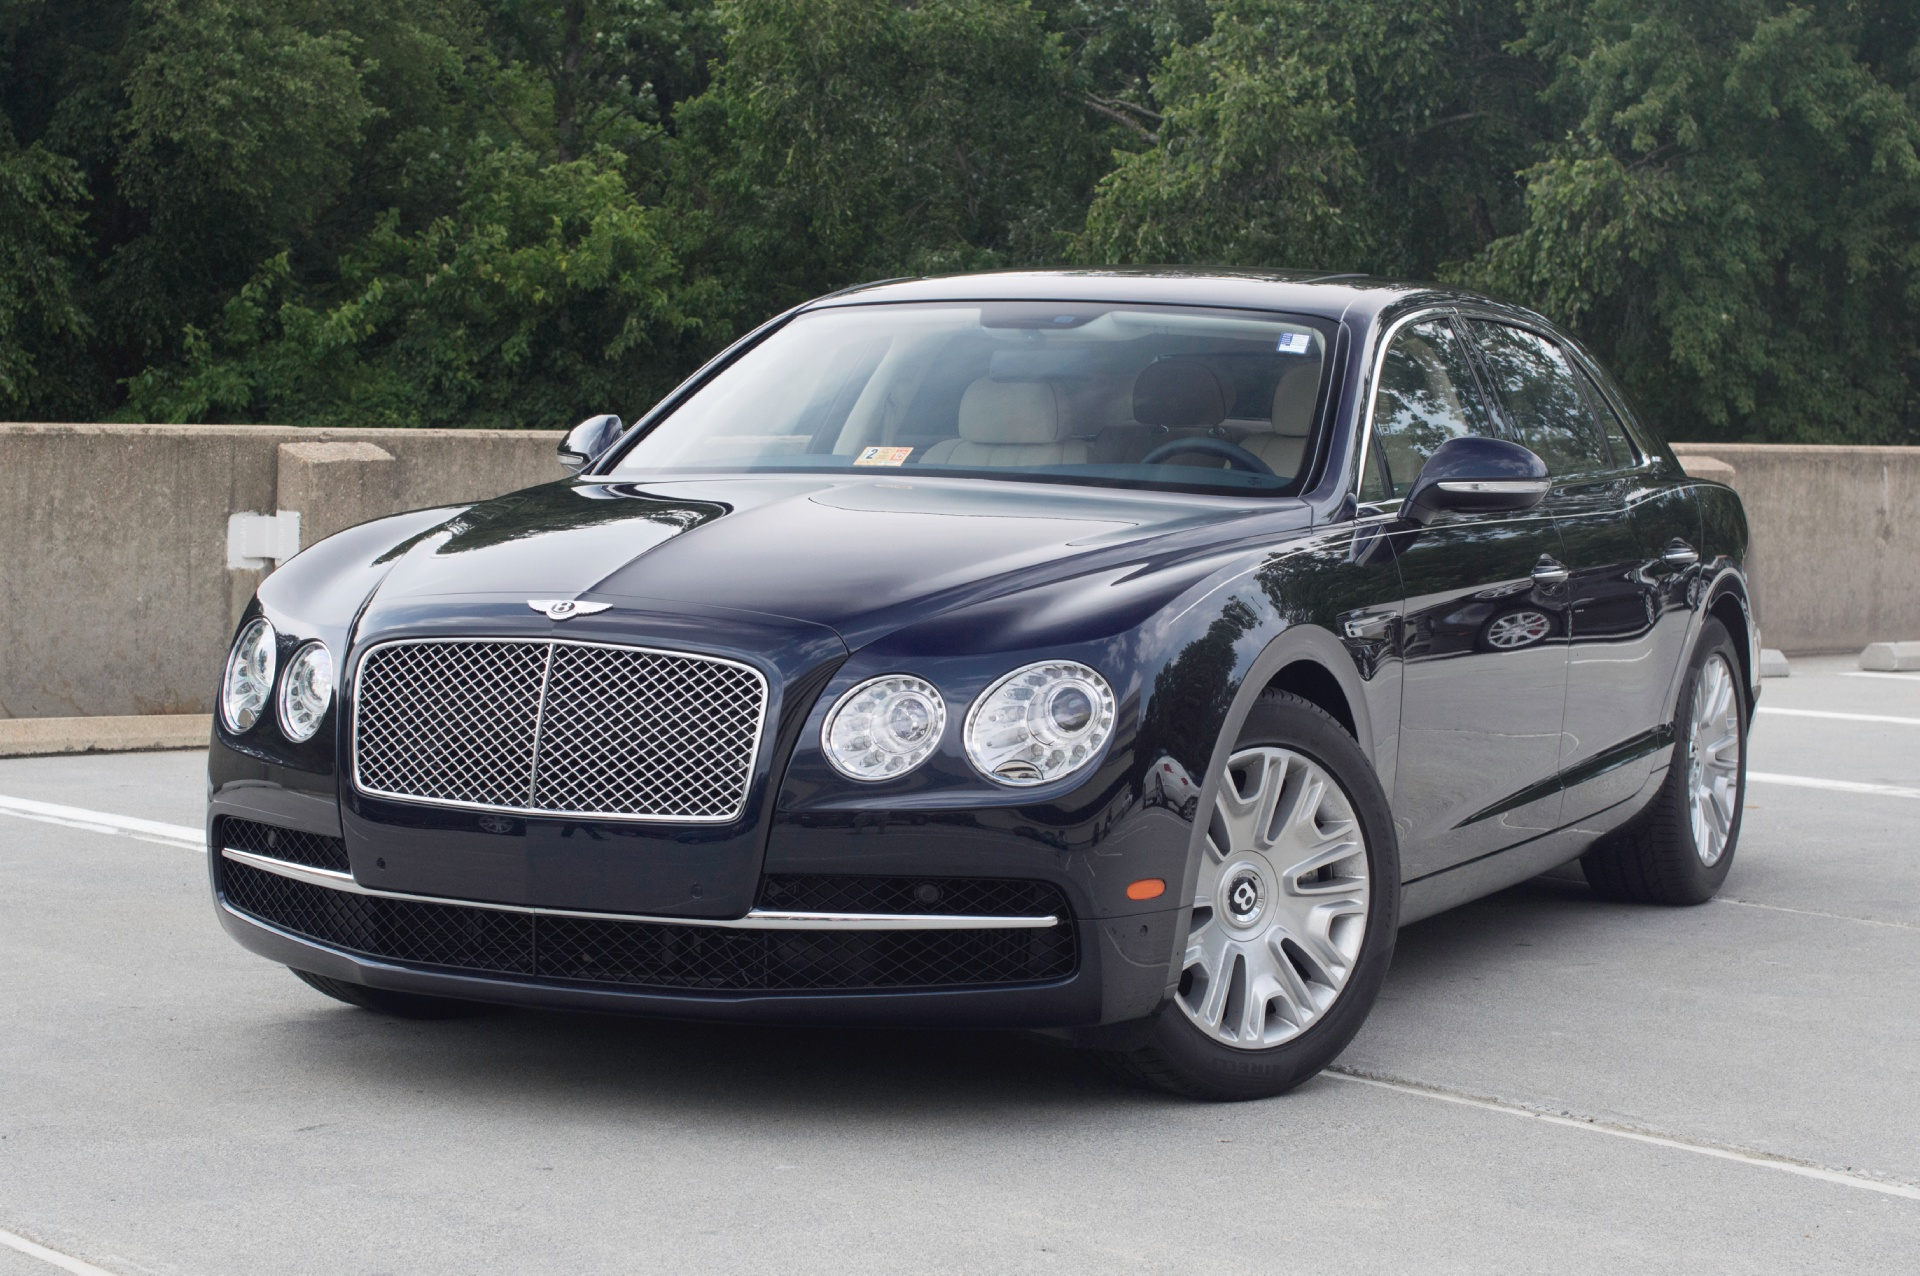 2014 bentley flying spur w12 stock # 4n094086 for sale near vienna